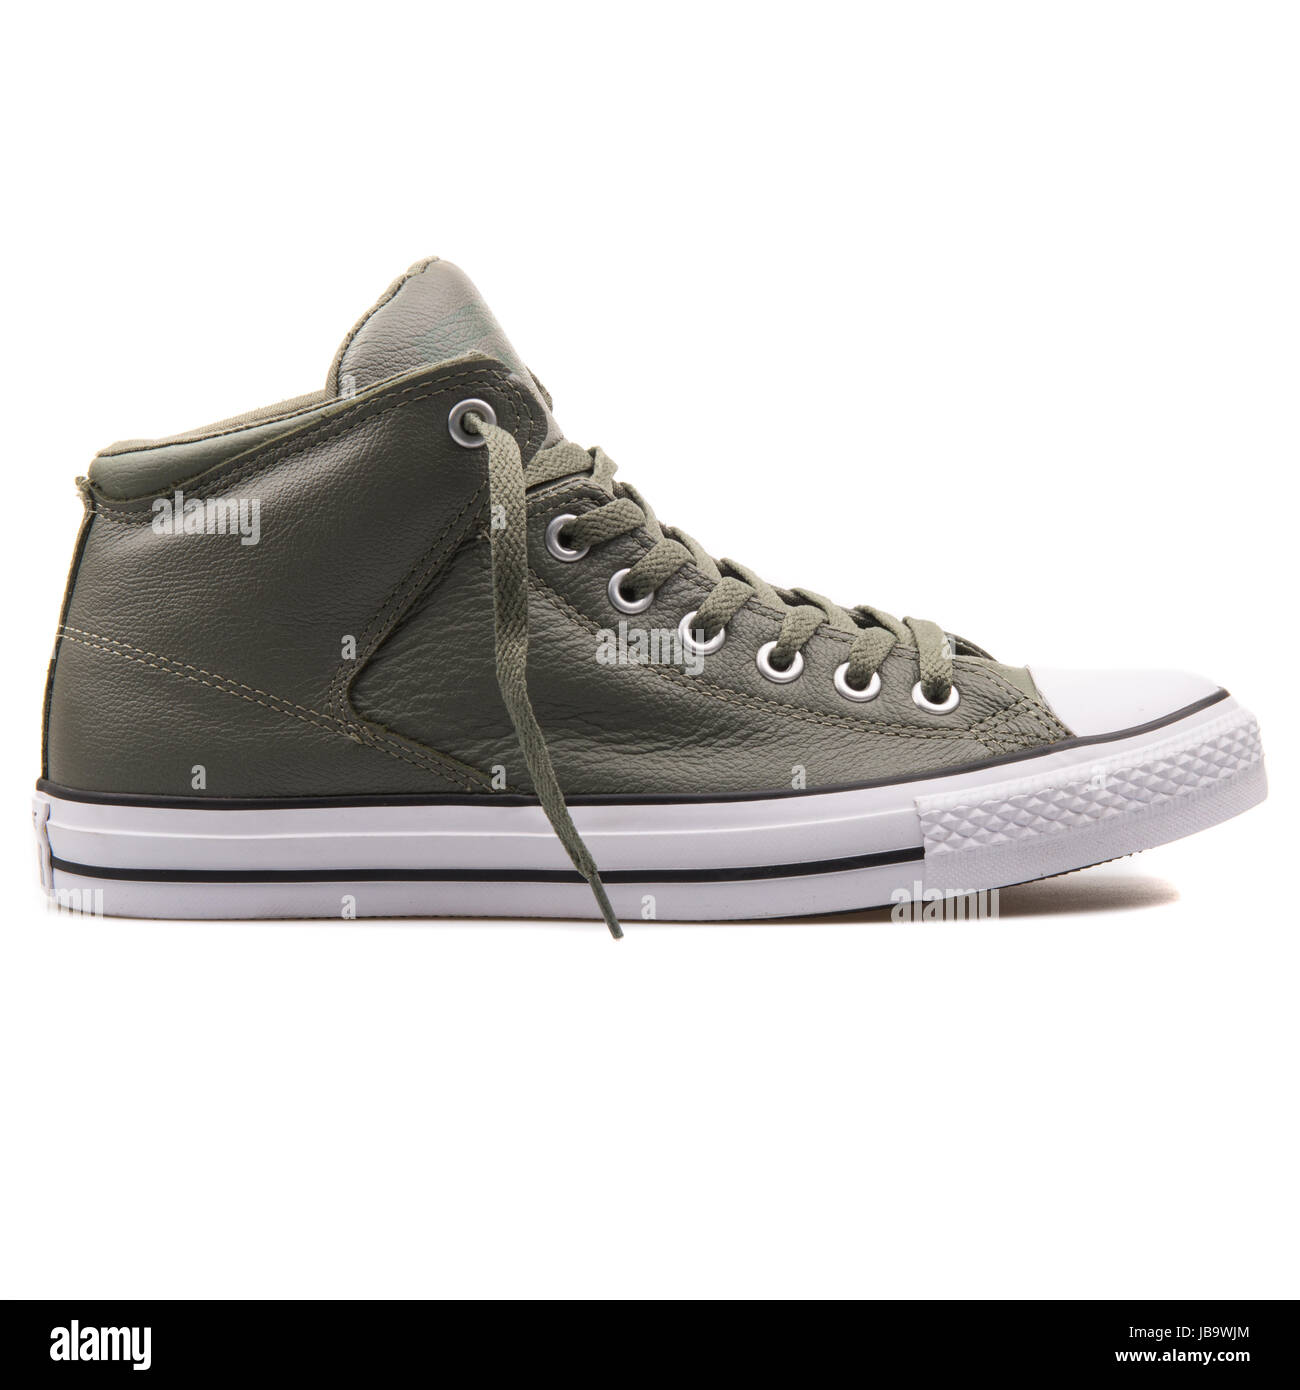 e8614eb800dc Converse Chuck Taylor All Star High Street Olive Submarine Unisex Shoes -  149427C - Stock Image